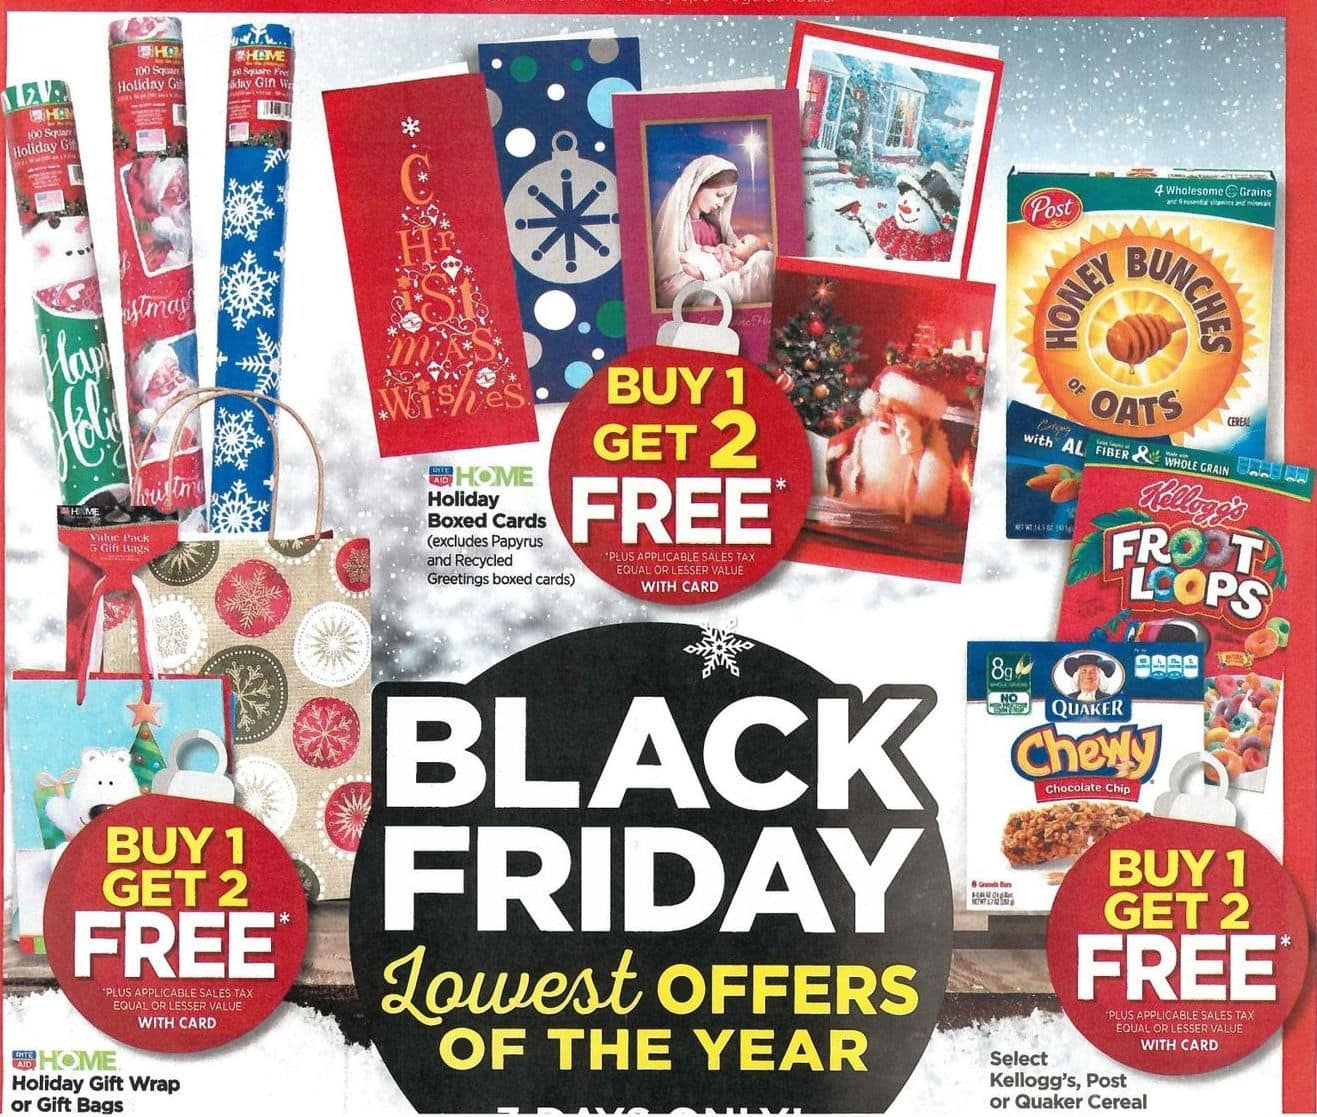 Rite Aid Christmas Cards.Rite Aid Black Friday Select Holiday Boxed Cards B1g2